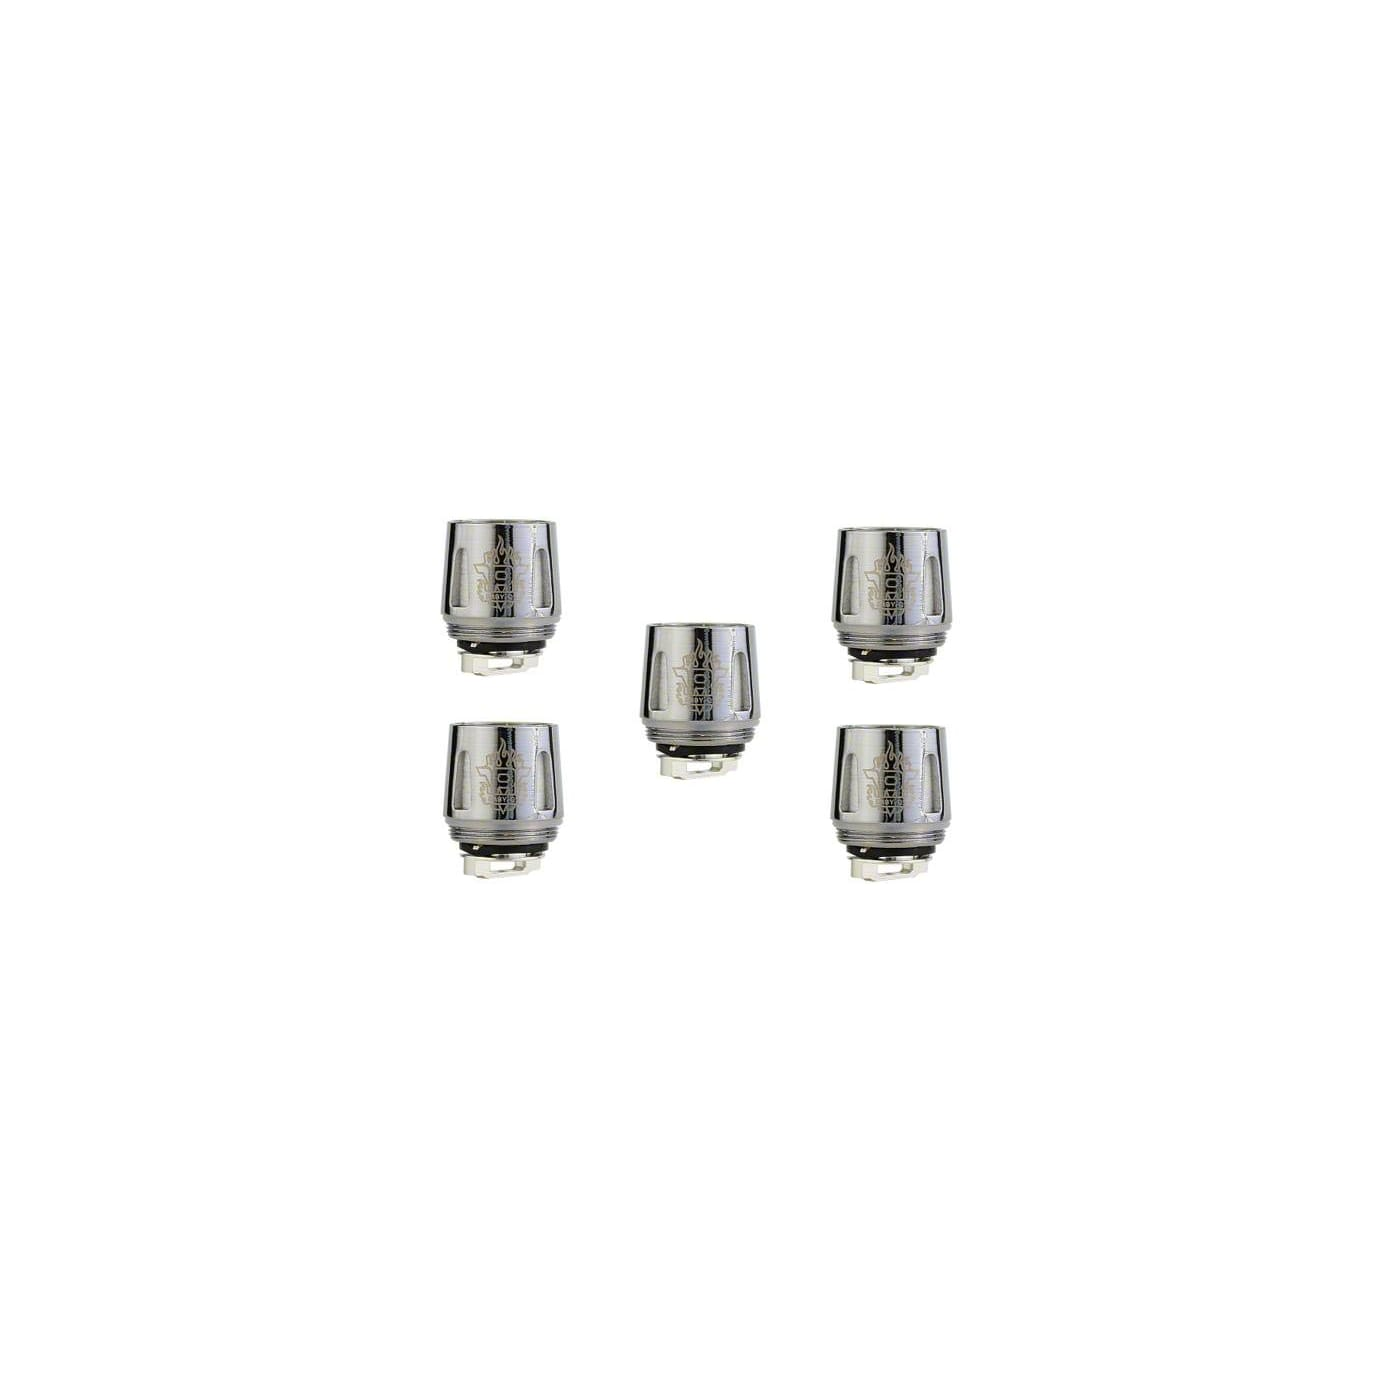 Smok TFV8 Baby Beast Q2 Replacement Coil - 5 pack